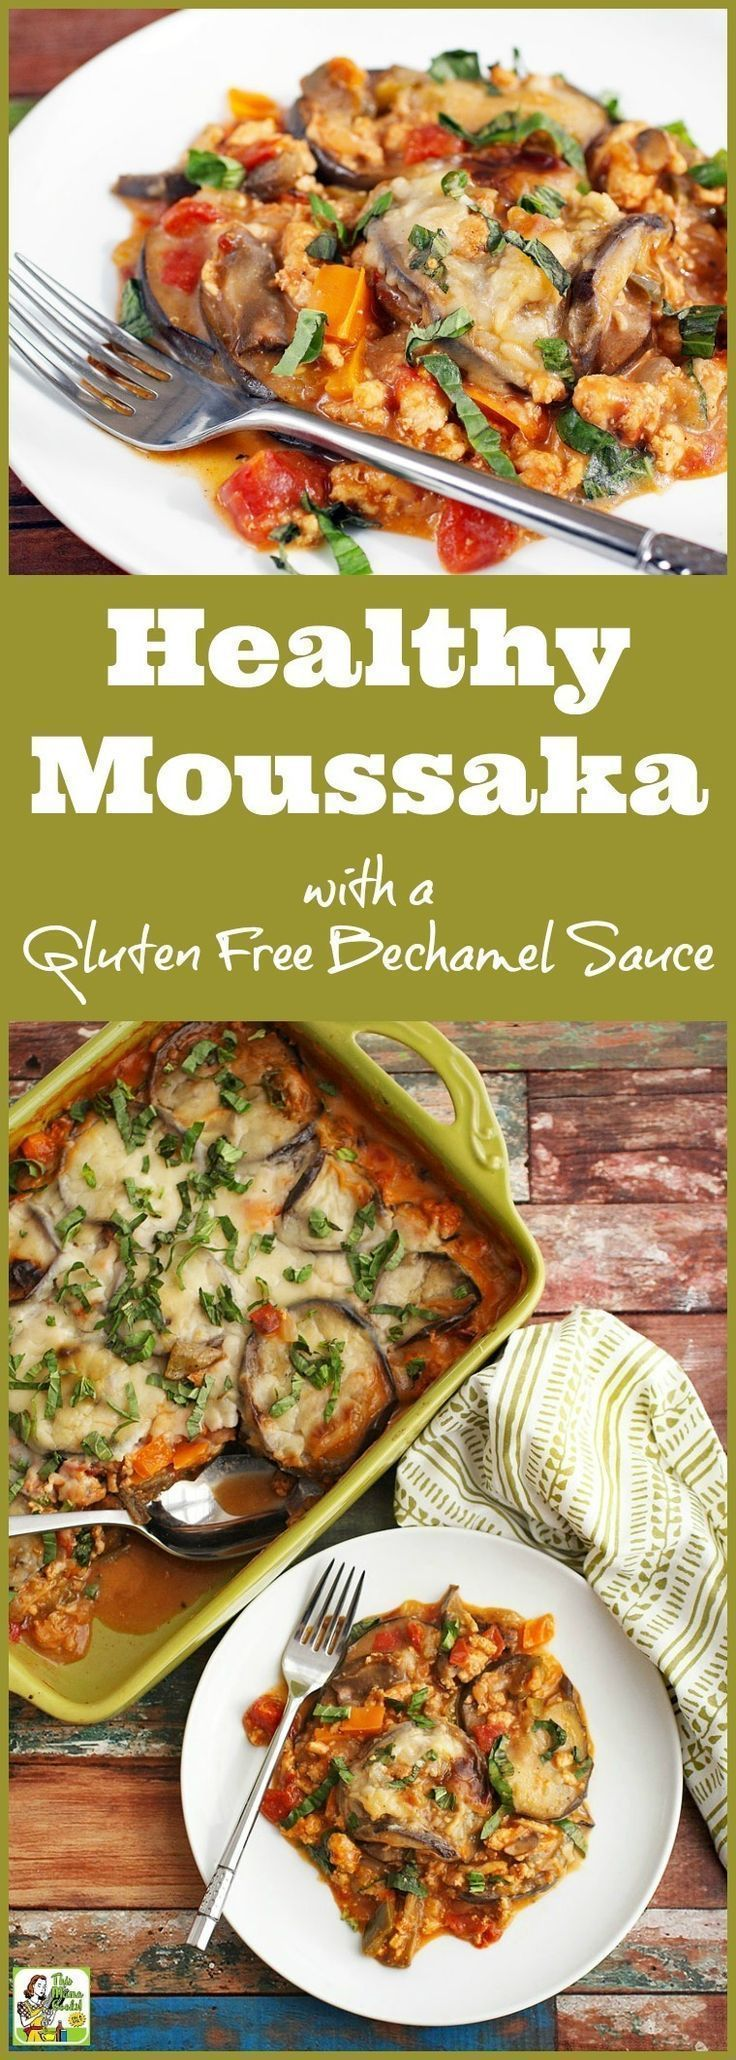 Learn how to make a healthy moussaka recipe with a dairy free and gluten free bechamel sauce. Click to get this easy Greek moussaka recipe made with ground turkey.